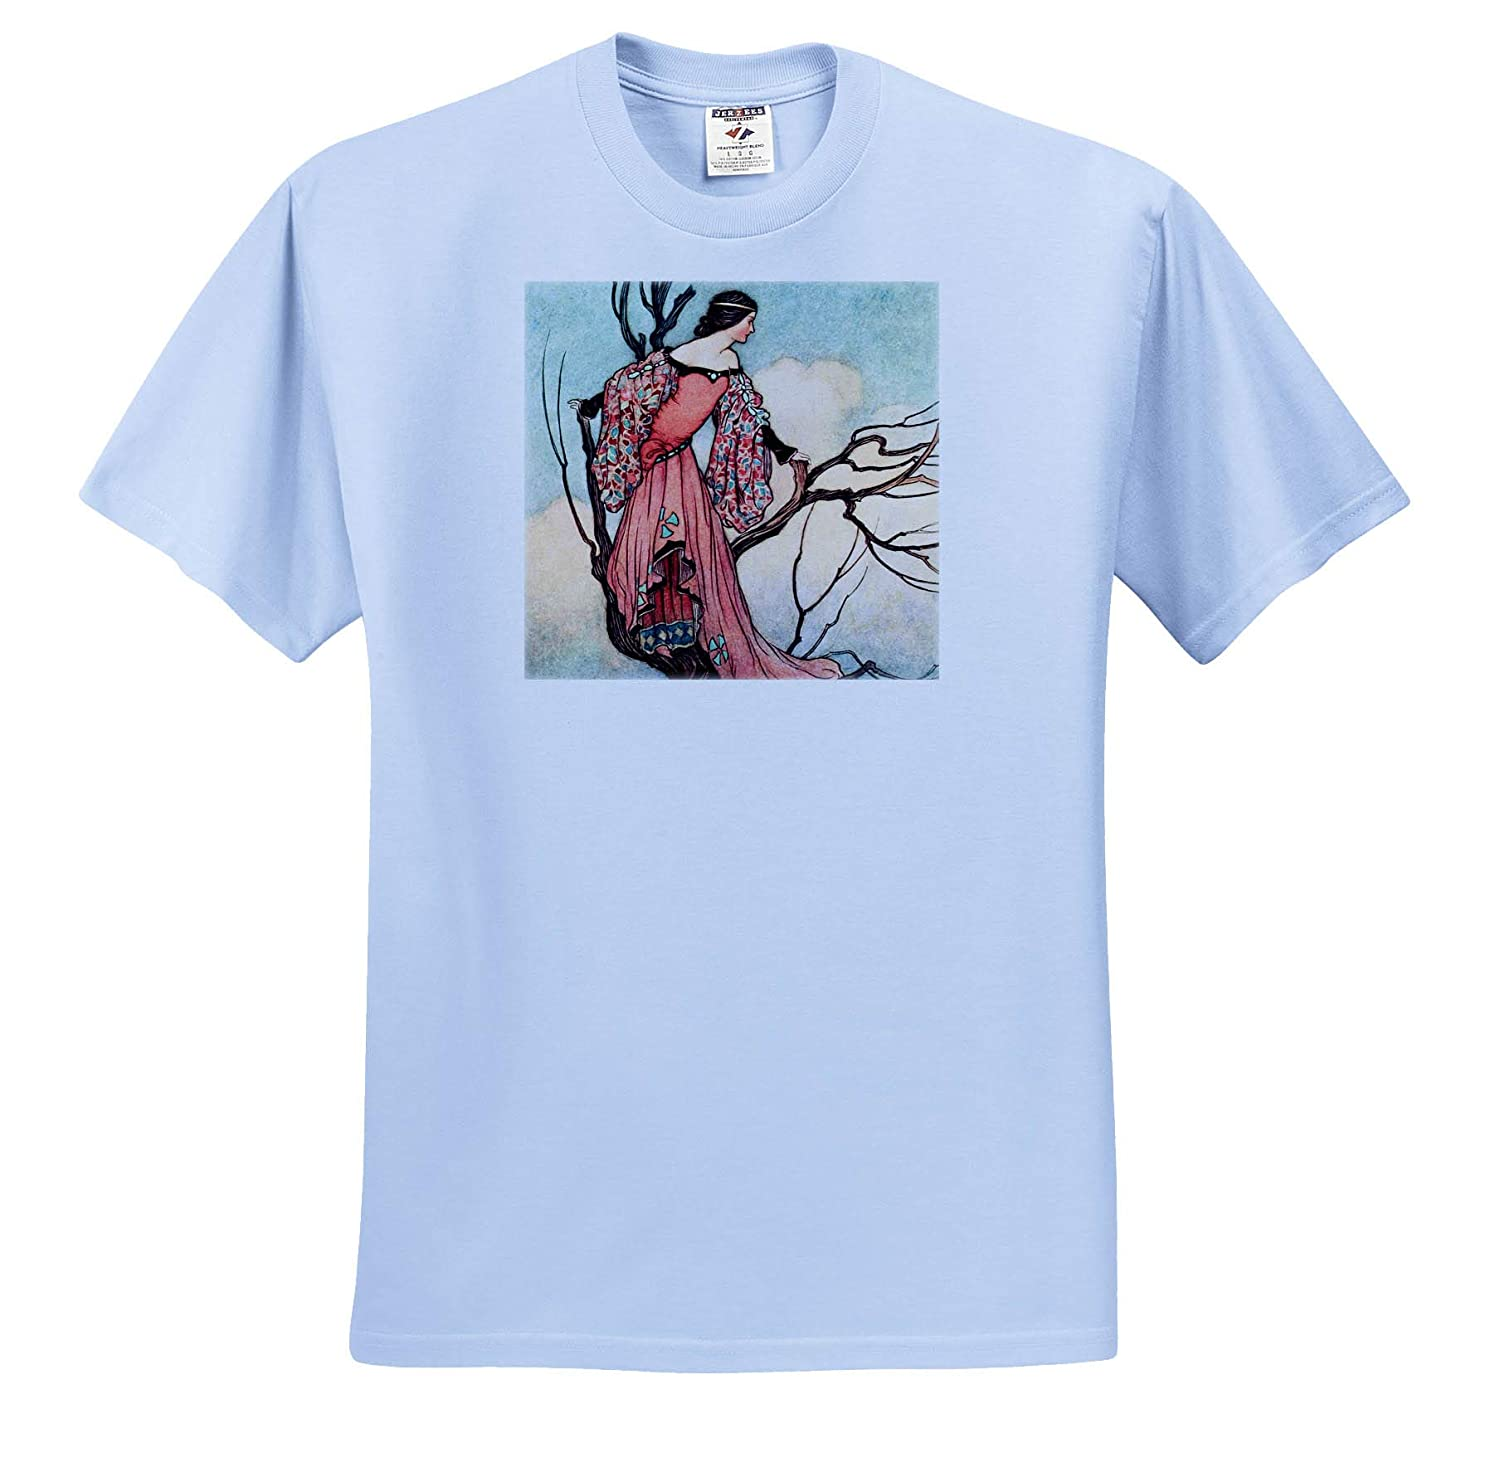 ts/_309590 Print of a Maiden on a Tree Adult T-Shirt XL Art- at Evening Tide 3dRose Made in The Highlands